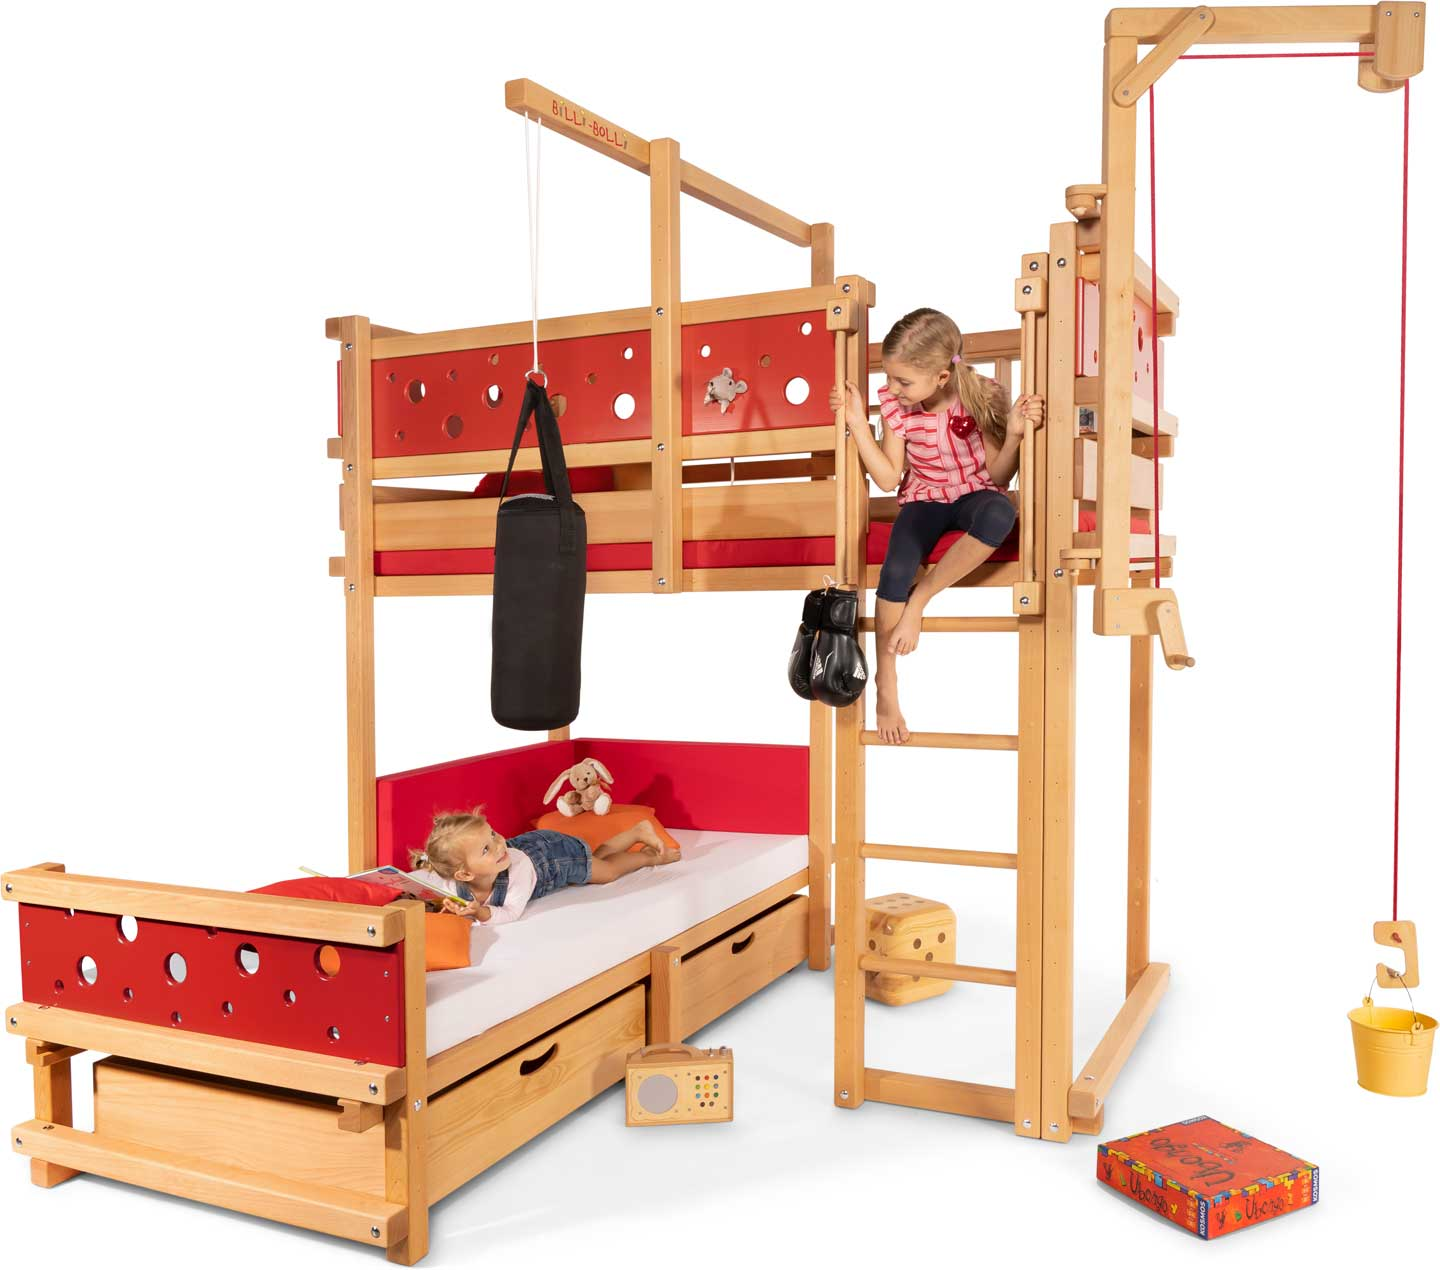 Abenteuer Hochbett Kids' Beds, Loft Beds And Bunk Beds From Billi-bolli